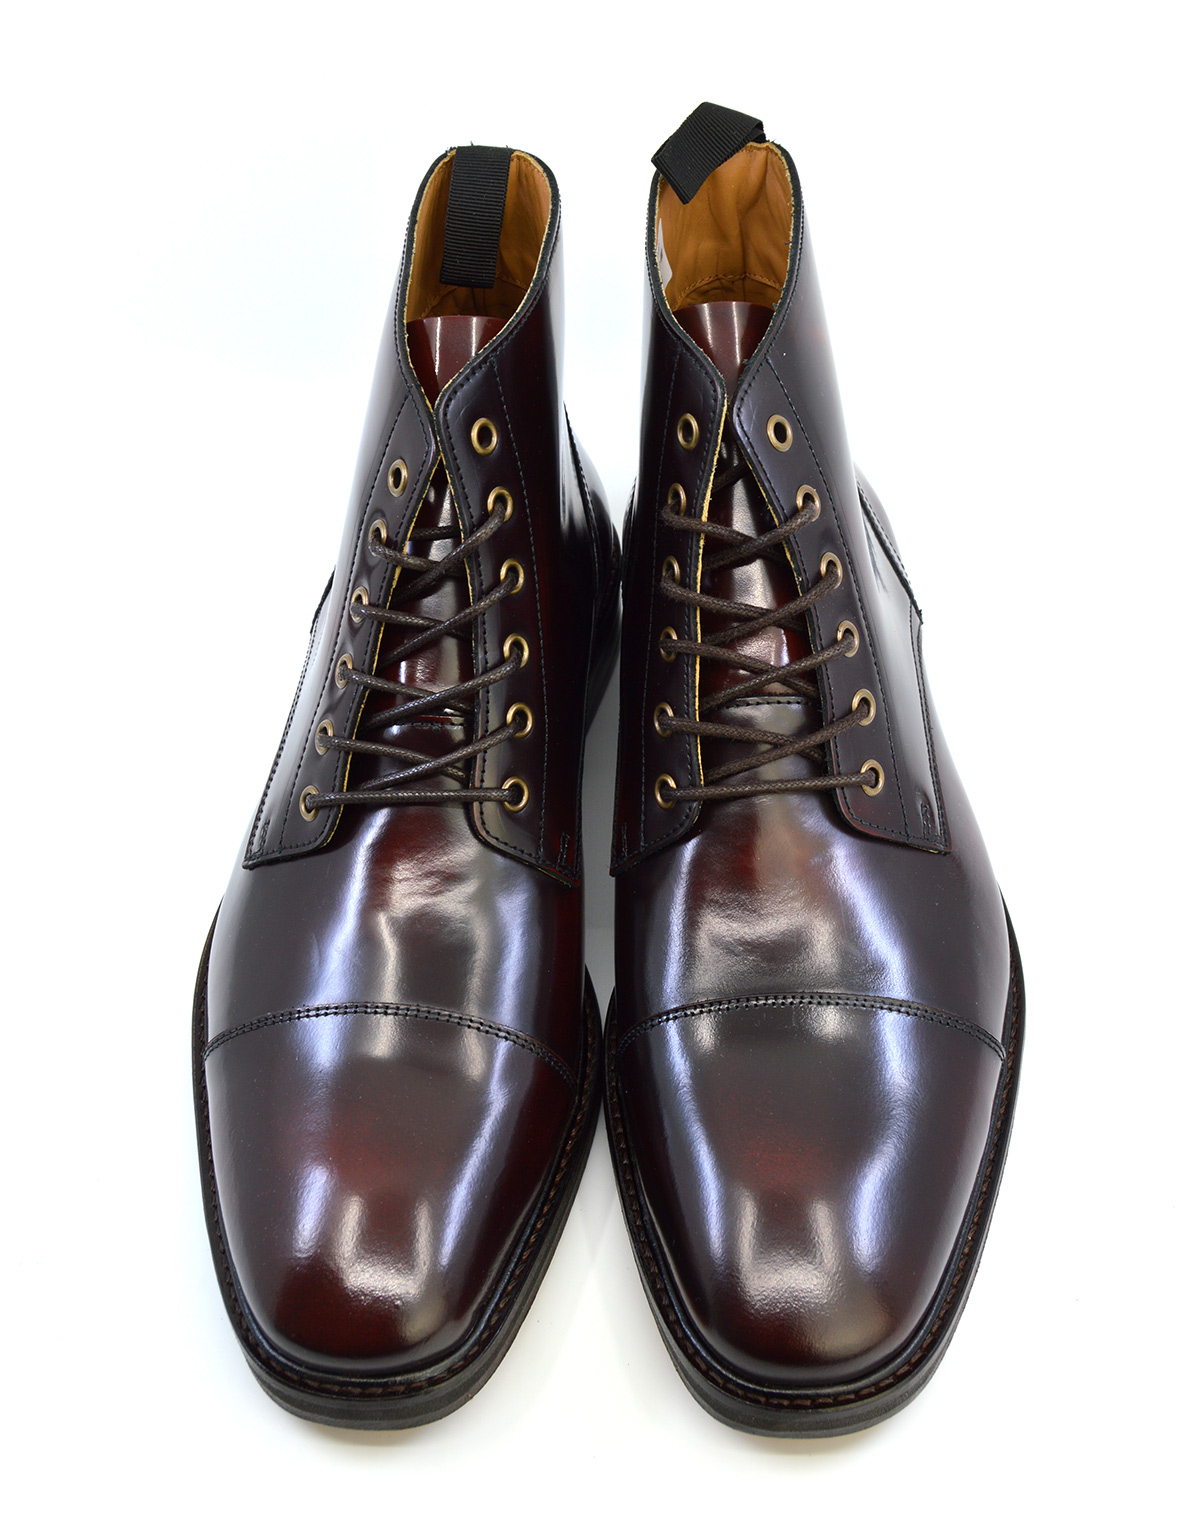 The Arthur Oxblood Capped Derby Boots Peaky Blinders Inspired Mod Shoes